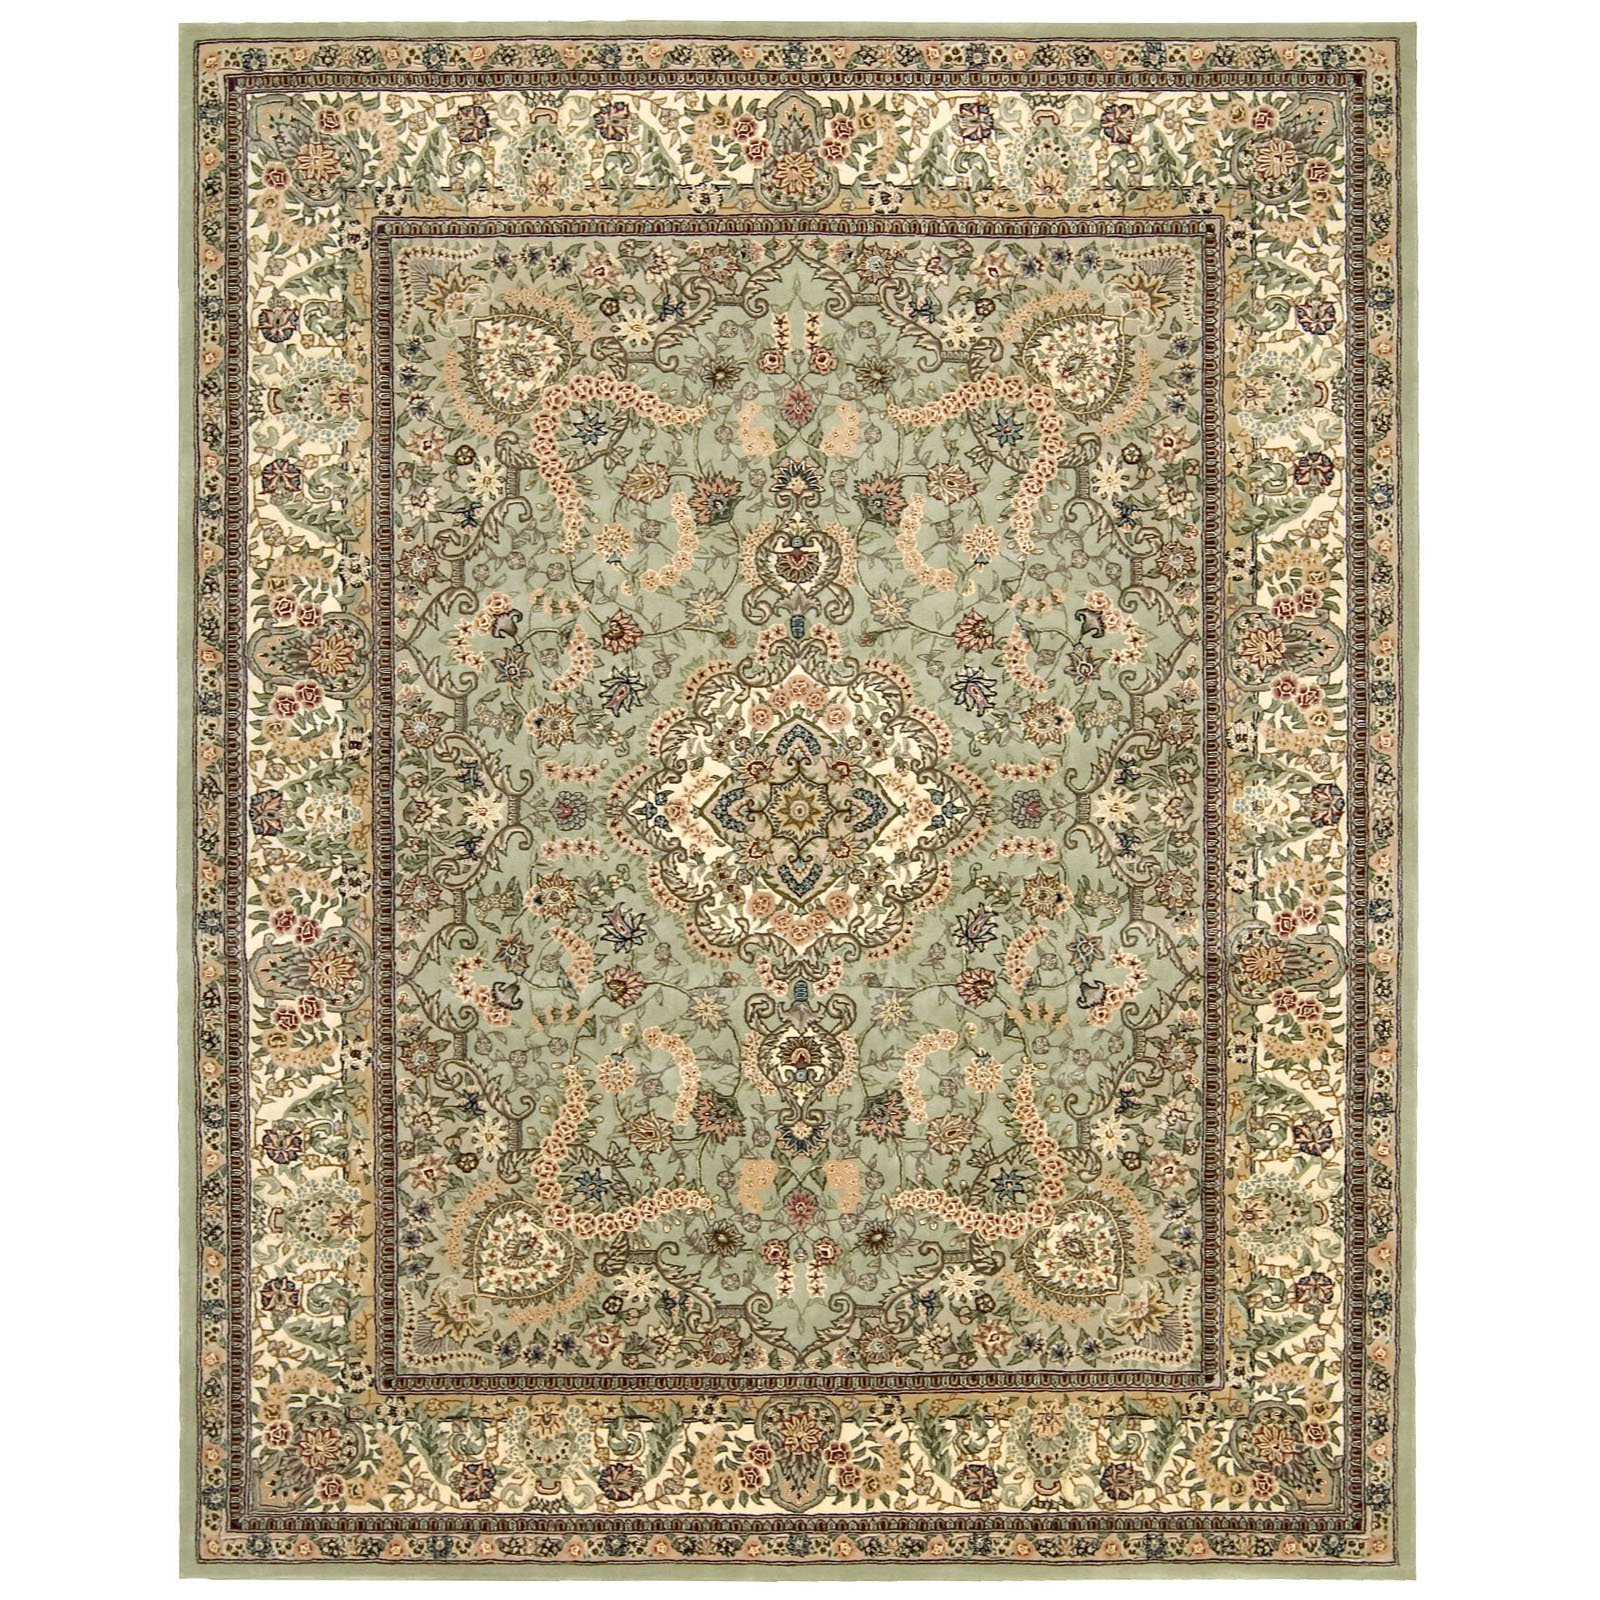 Nourison 2000 2005 Oriental Rug Light Green-2.6 x 12 ft. Runner by Nourison